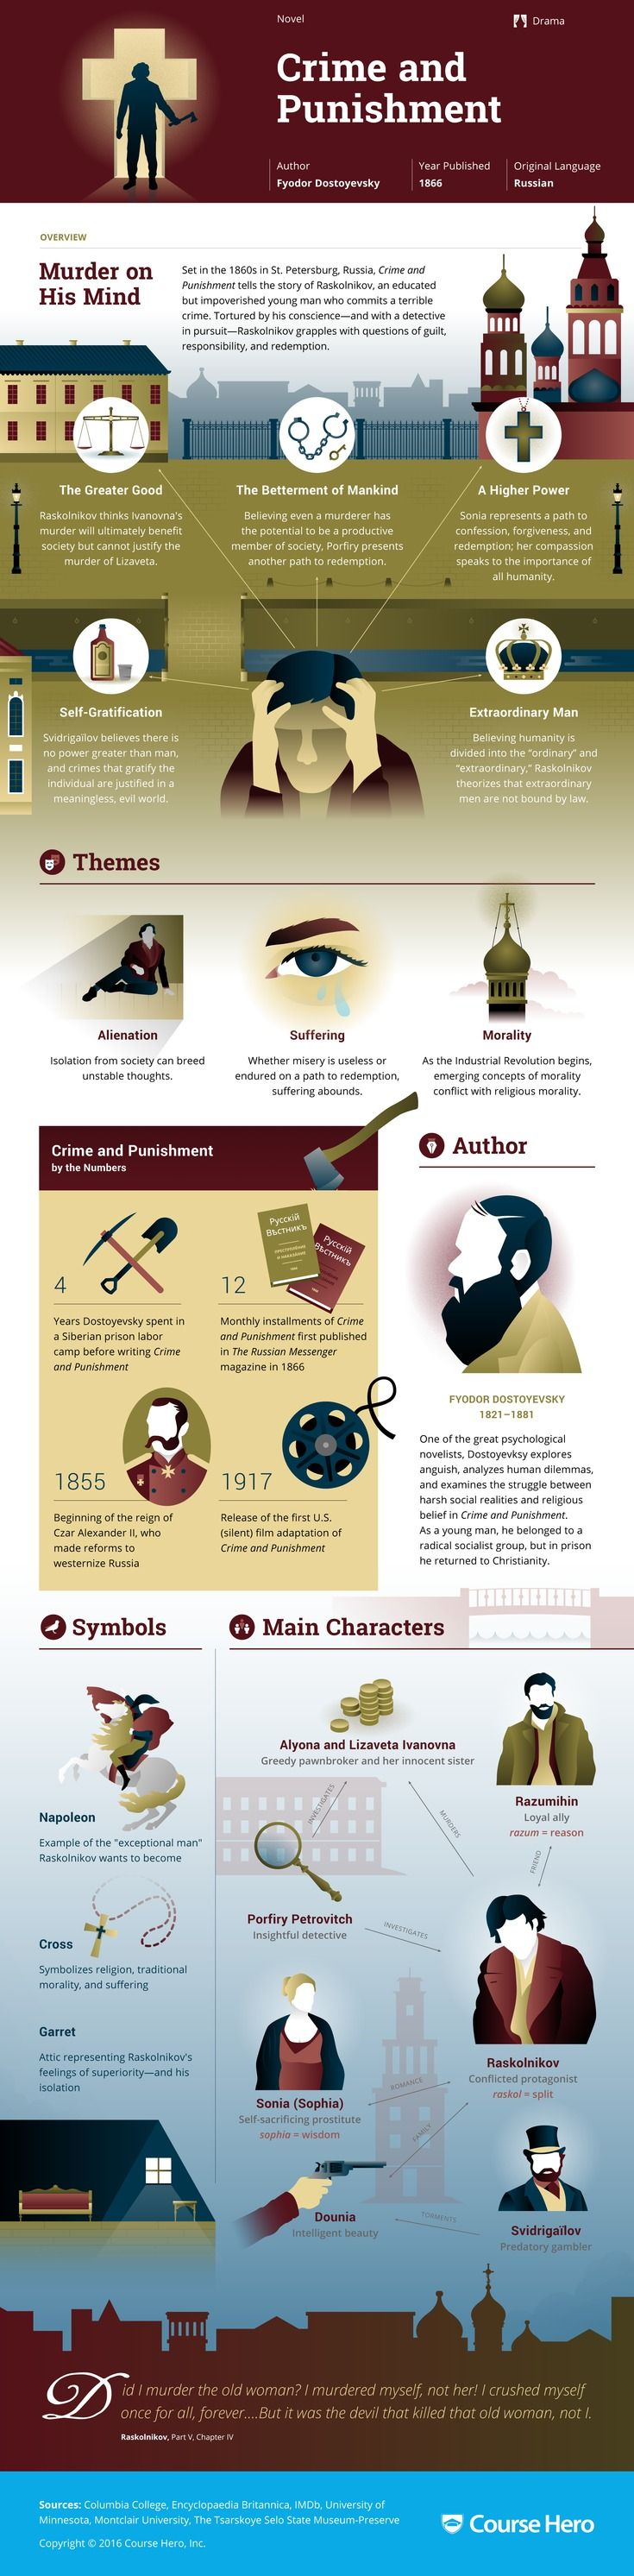 This Crime and Punishment infographic from Course Hero is as awesome as it is helpful. Check it out!